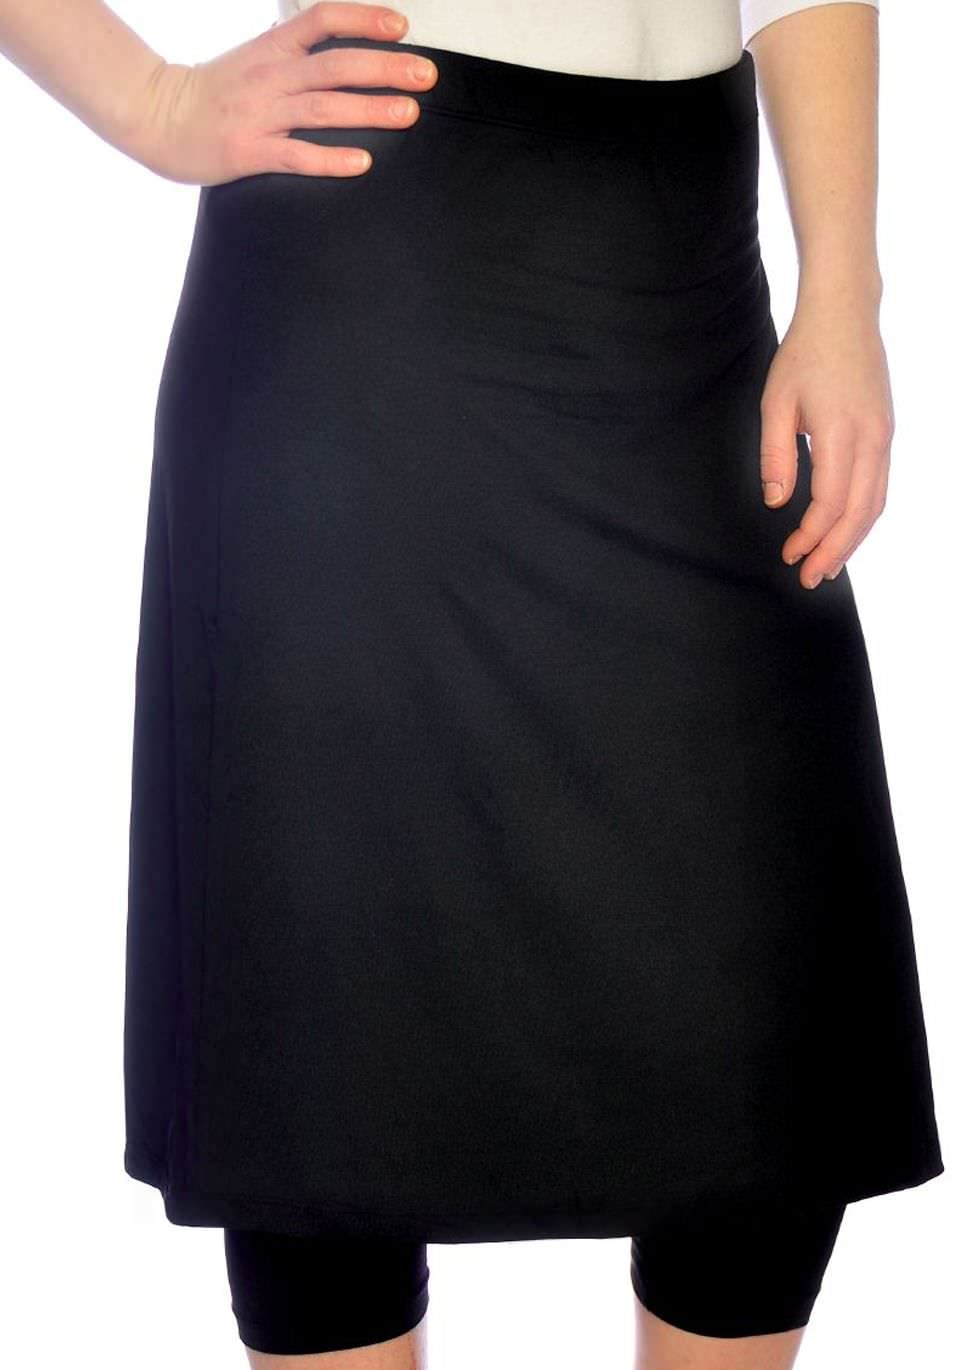 235df78705be8 Kosher Casual Black Running Swim Skirt With Leggings that goes up to 2x.  Here s a similar one with a knee length skirt and below the knee leggings  that goes ...